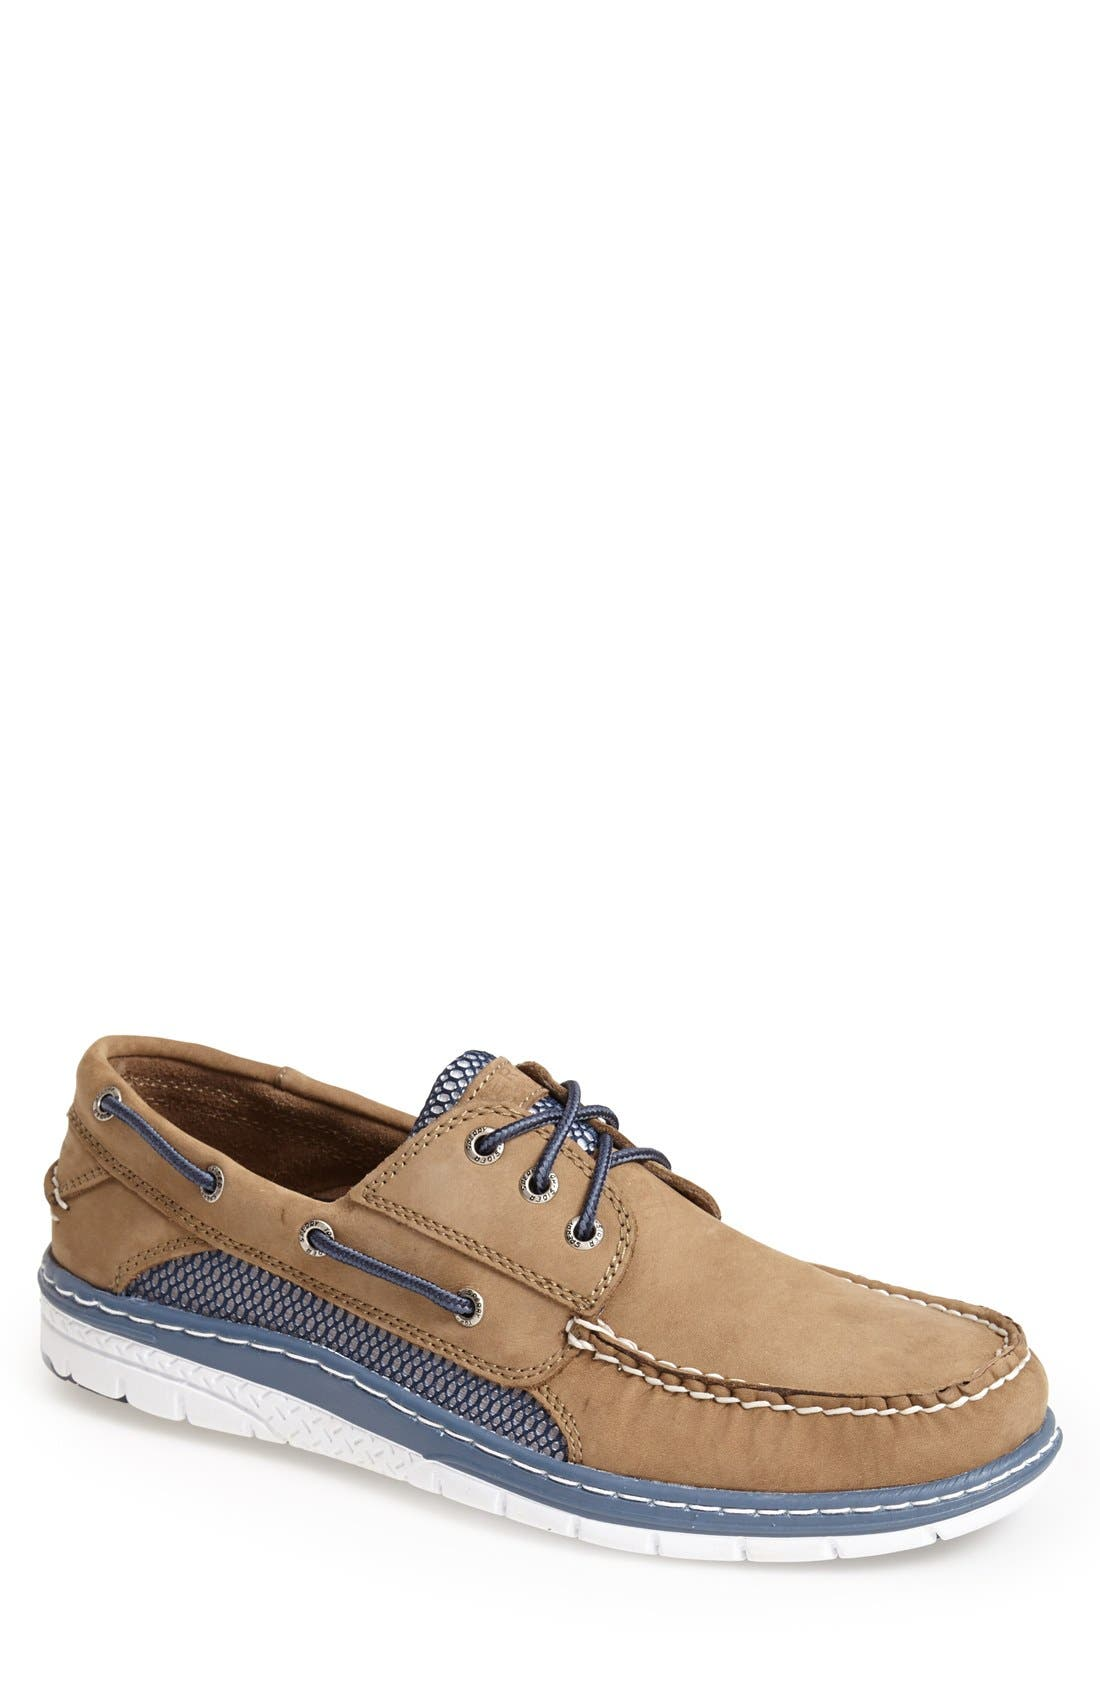 'Billfish Ultralite' Boat Shoe,                             Main thumbnail 15, color,